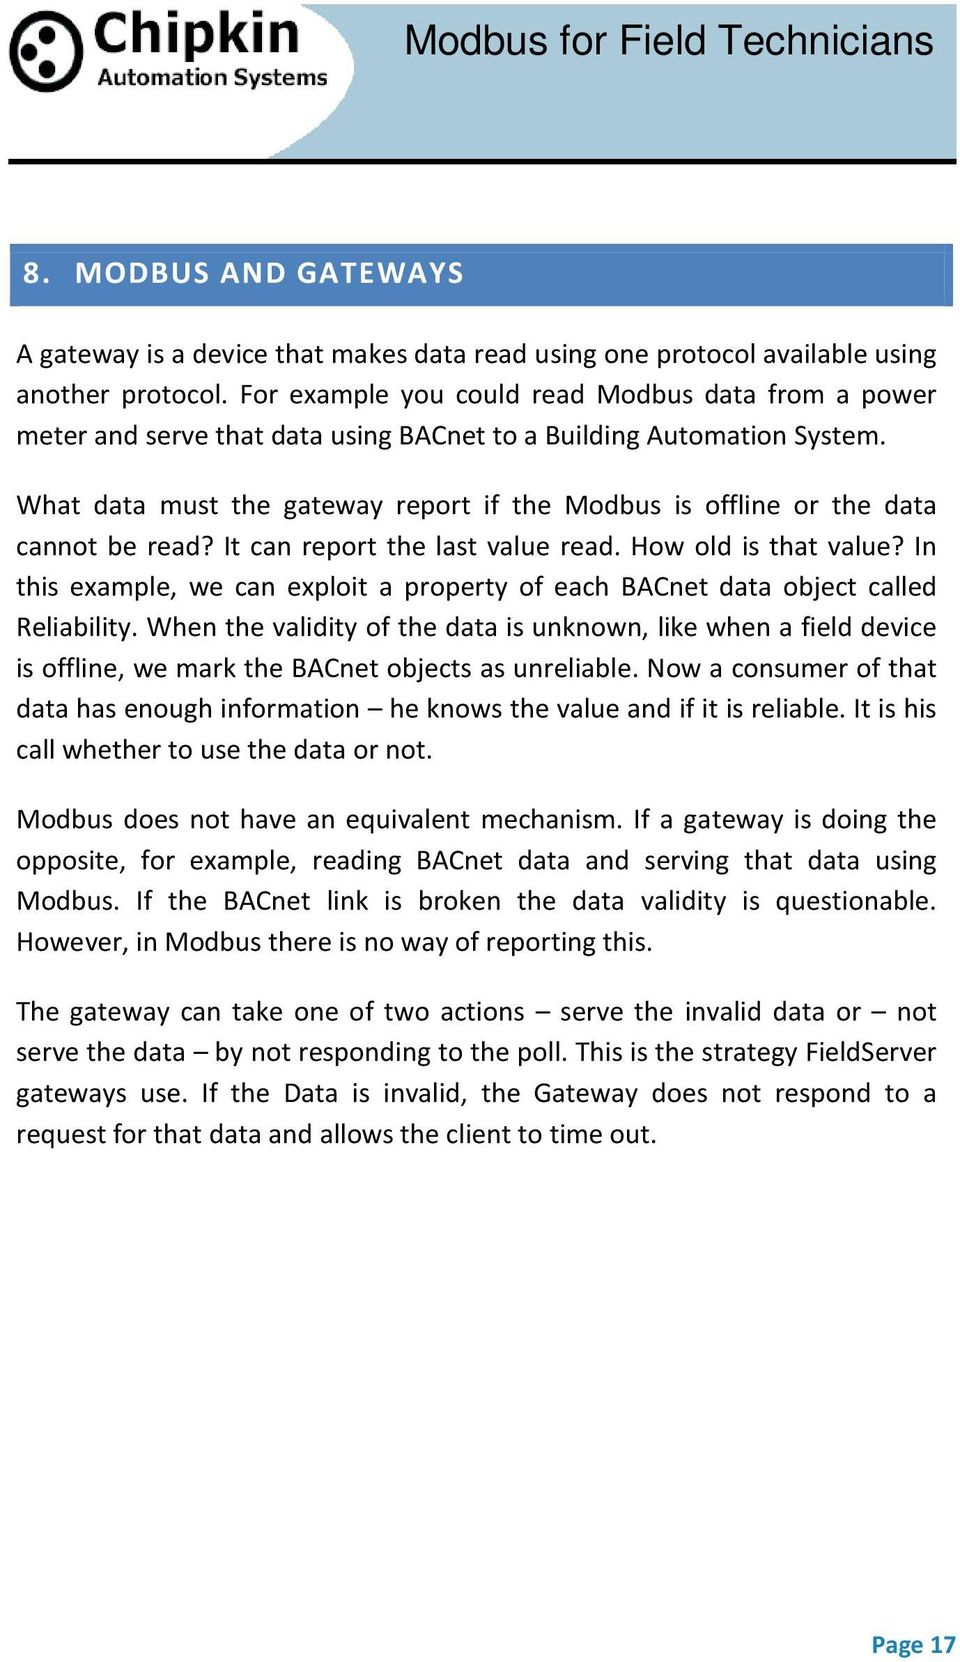 What data must the gateway report if the Modbus is offline or the data cannot be read? It can report the last value read. How old is that value?